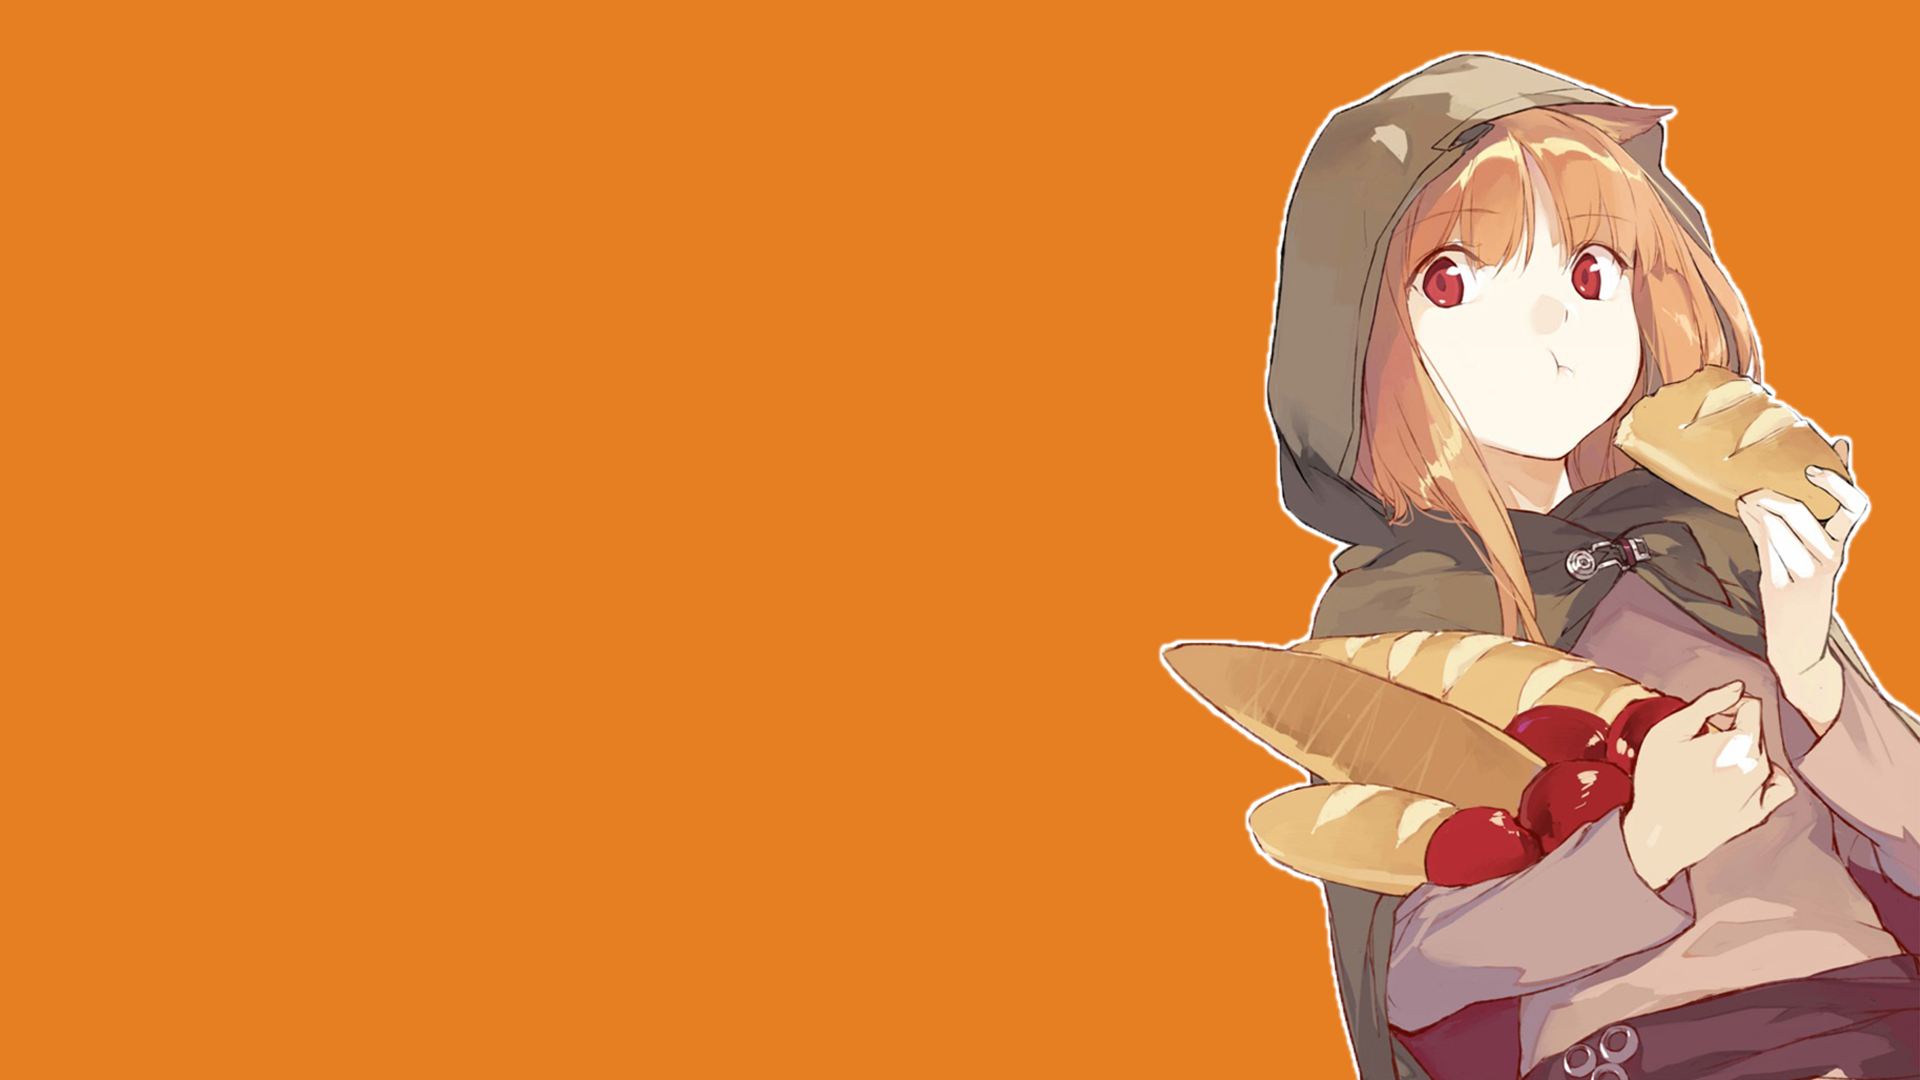 Holo Spice Wolf Hd Wallpaper From Gallsource Com Background